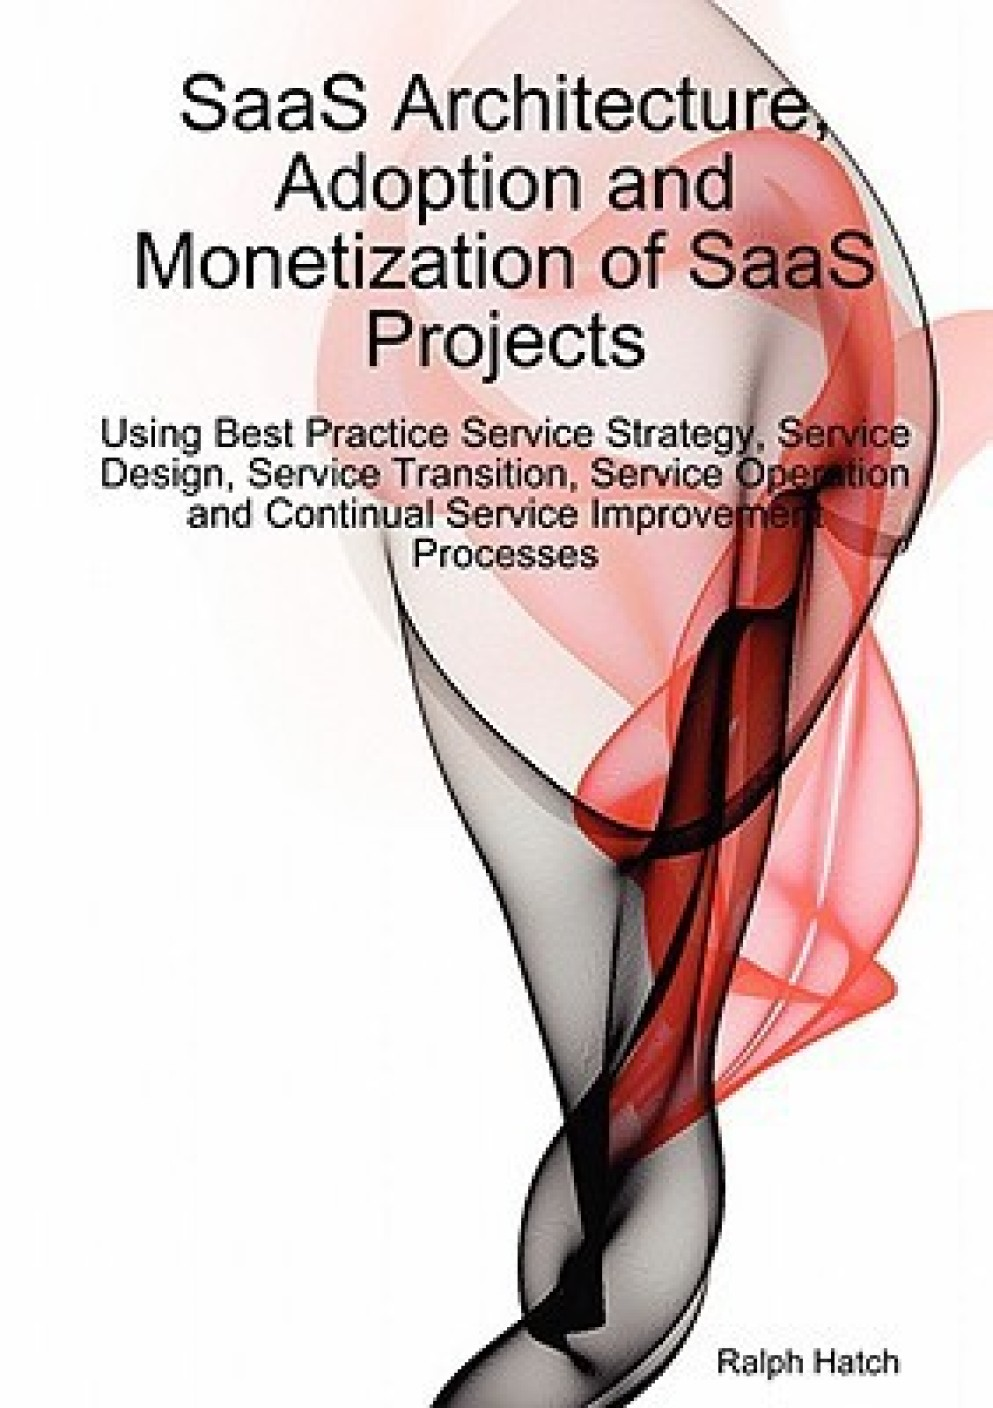 Service operation processes service strategy service design service - Saas Architecture Adoption And Monetization Of Saas Projects Using Best Practice Service Strategy Service Design Service Transition Service Operation